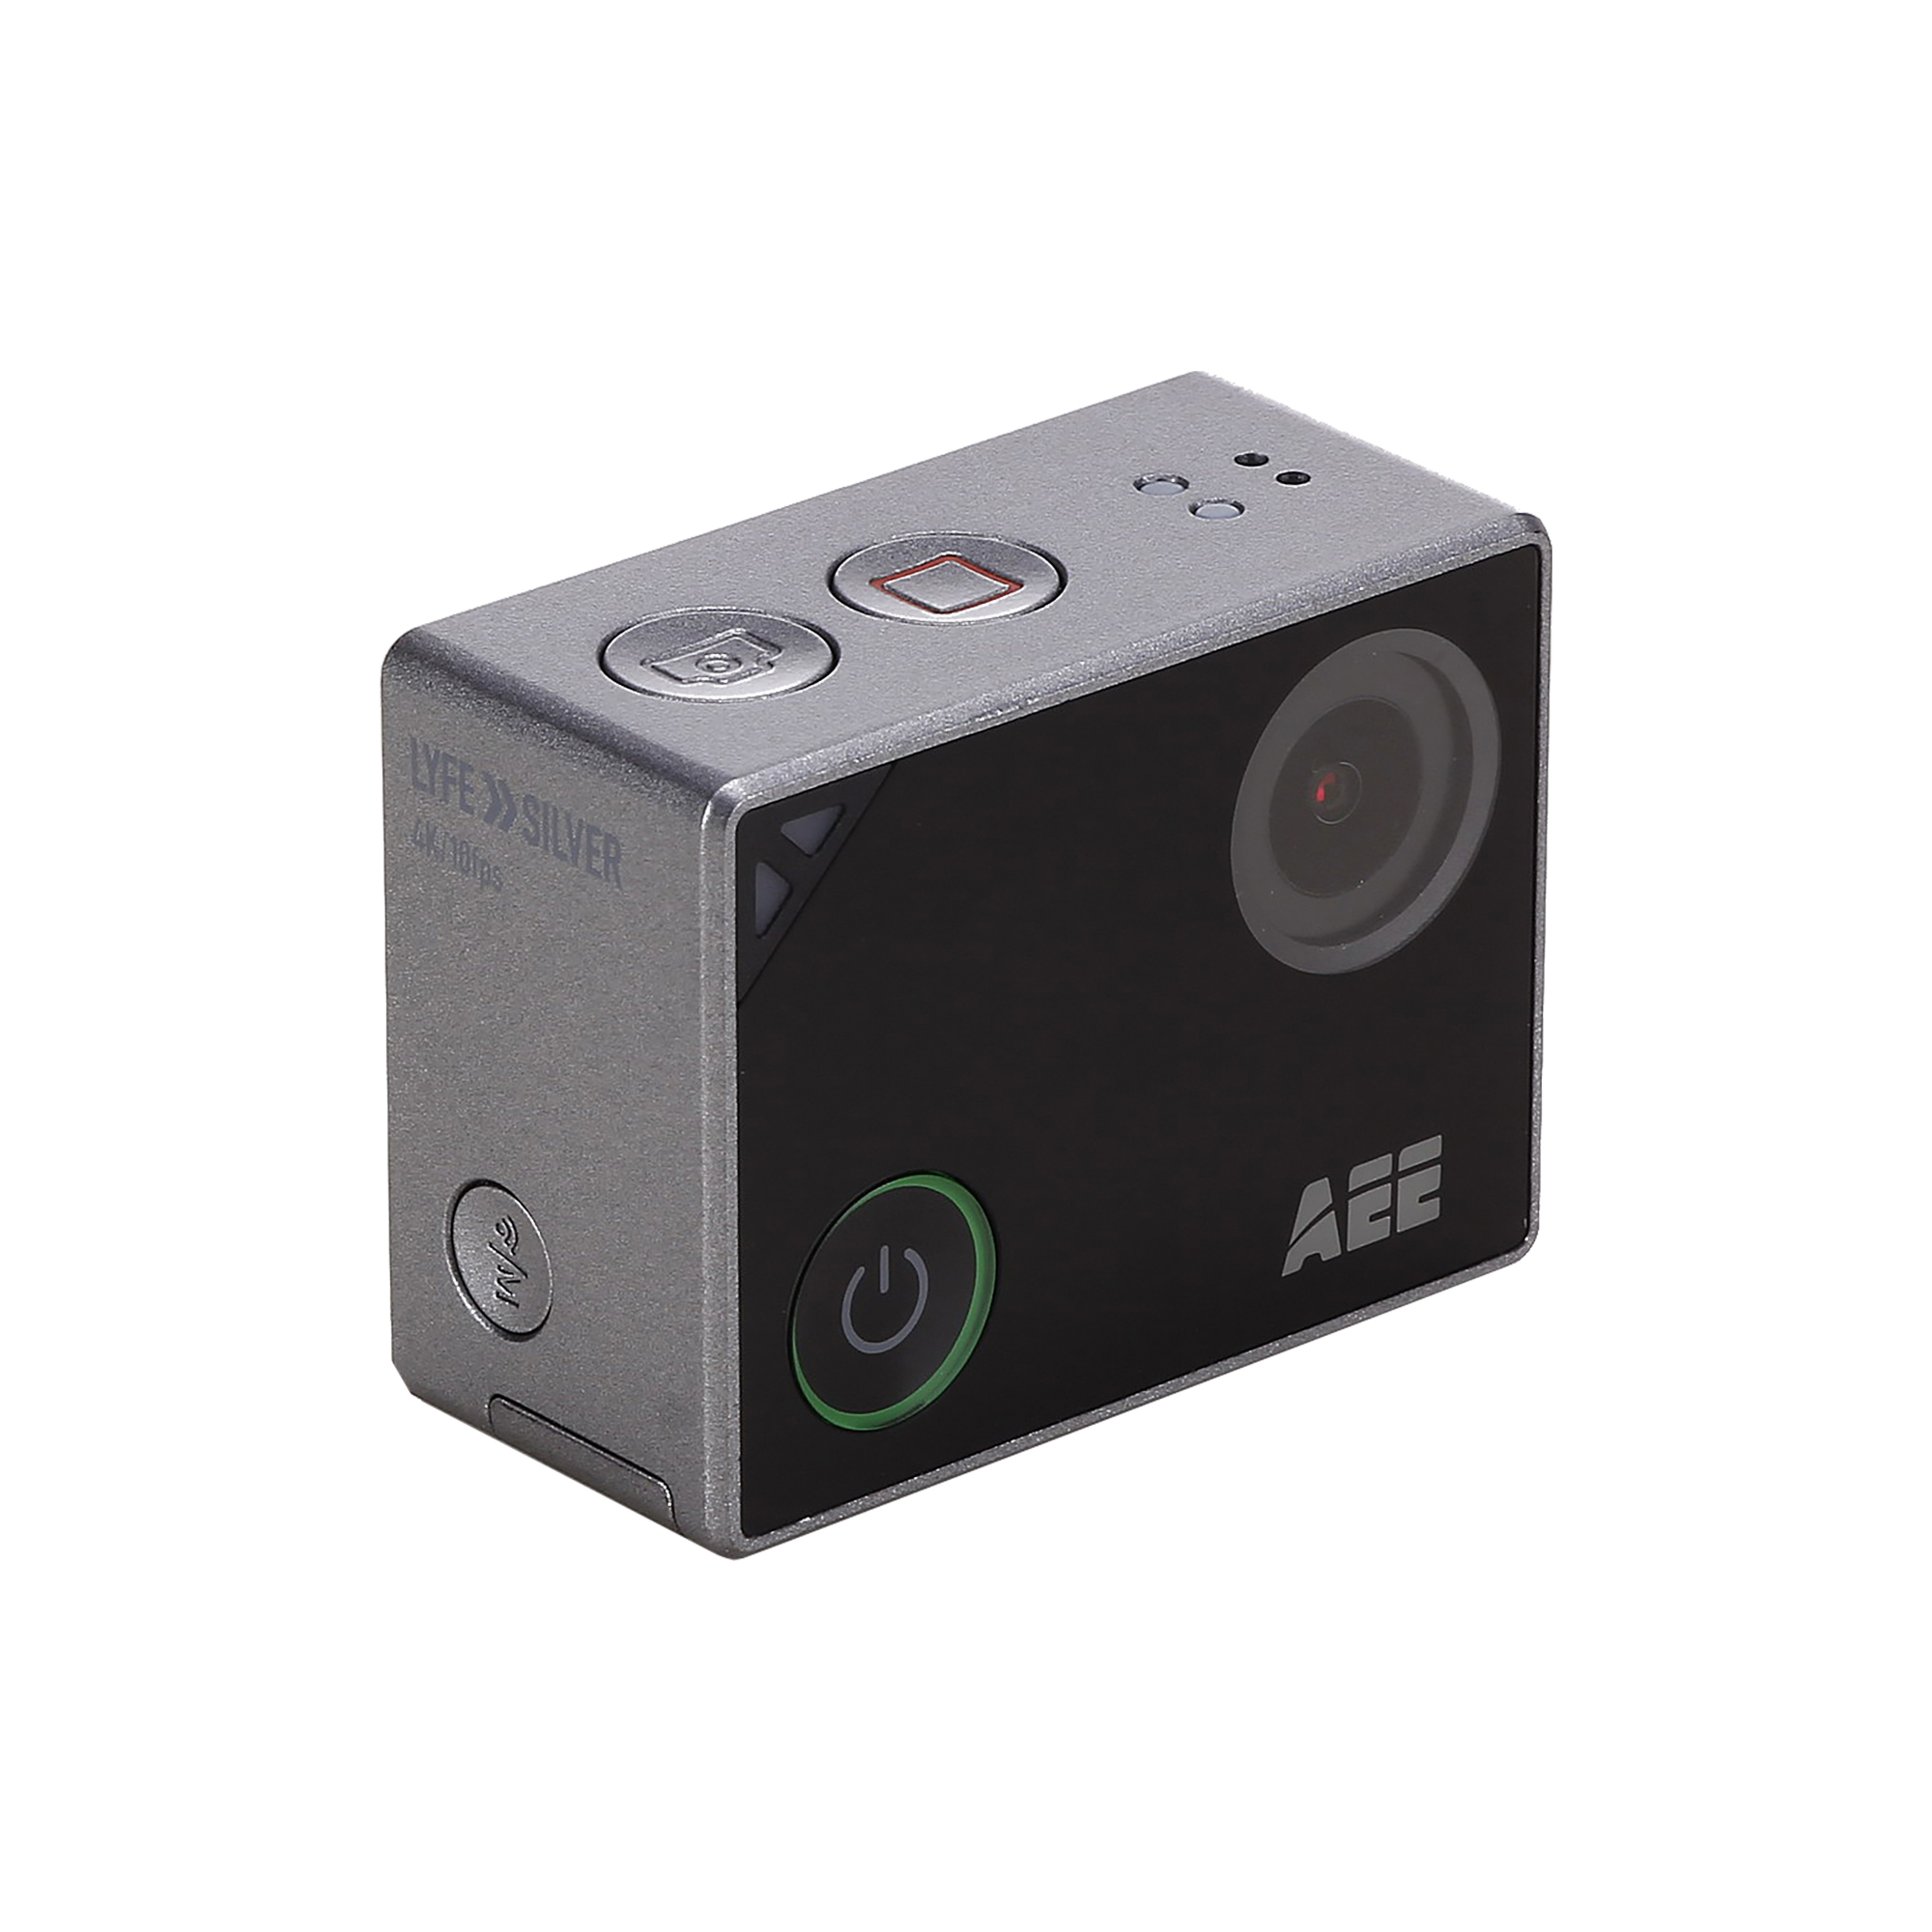 Lyfe Titan from AEE: High-performance video and photo sensors The…